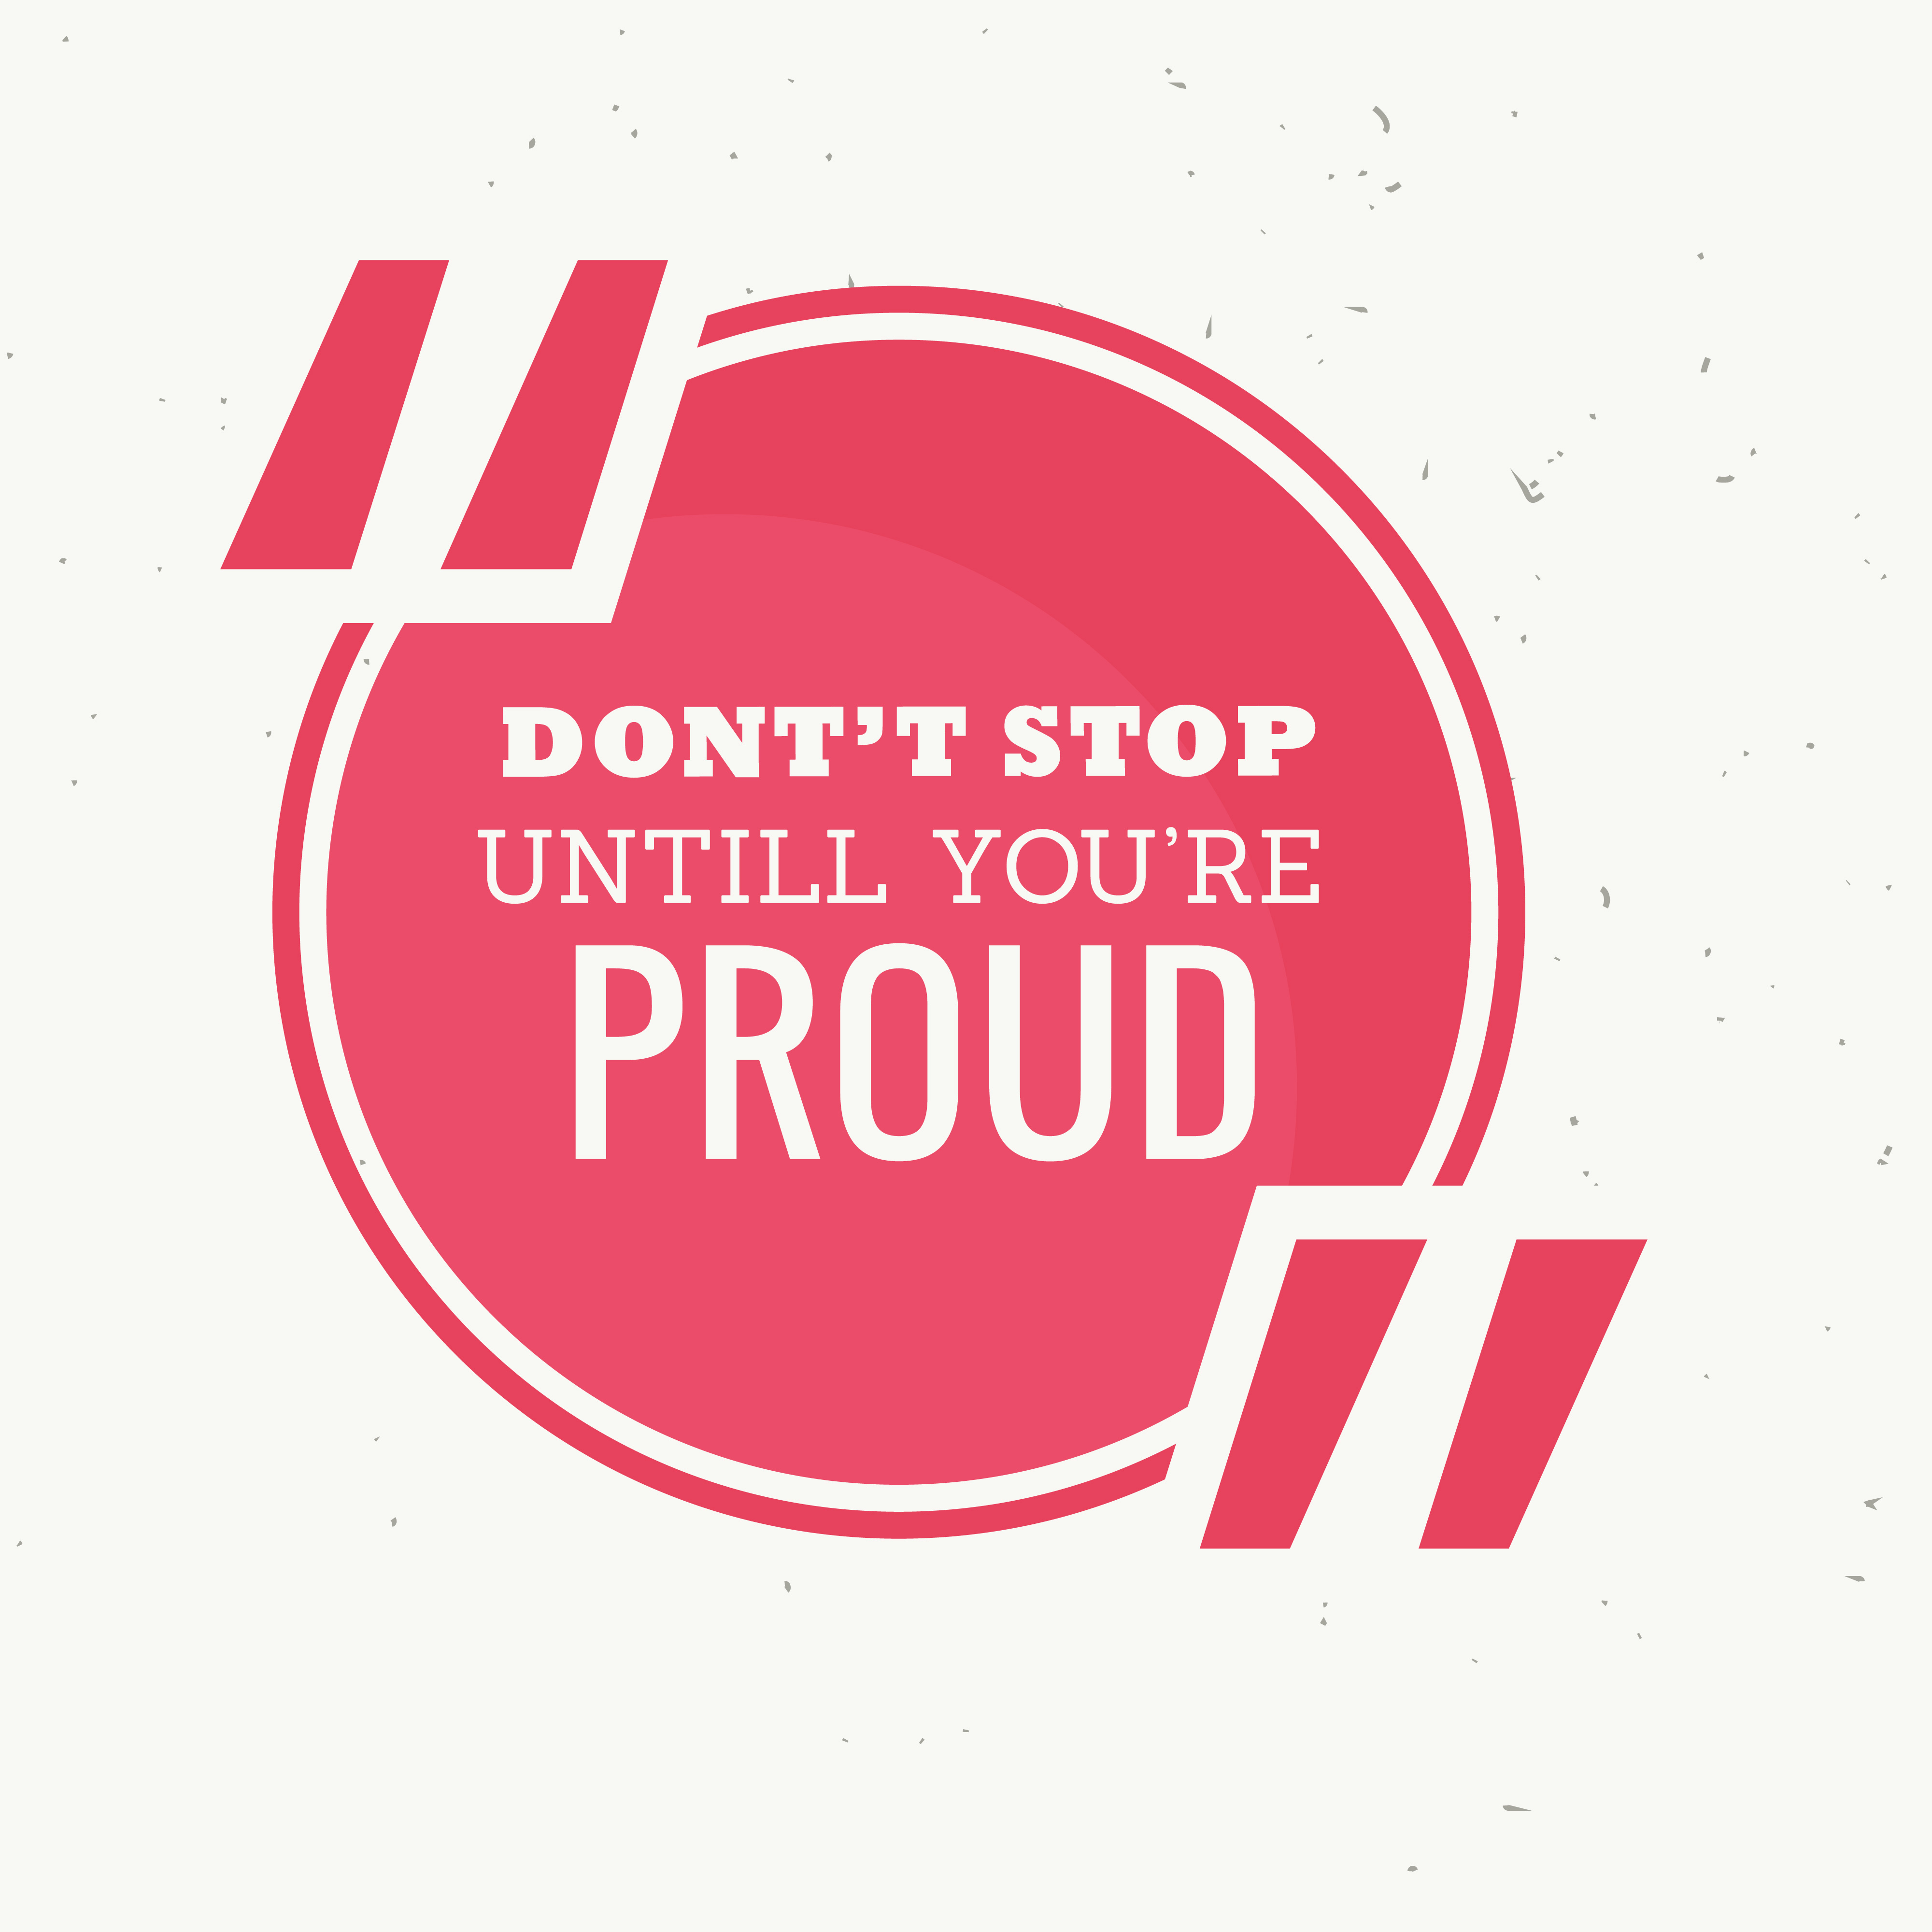 Inspirational Quote Red On Pinterest: Inspirational Quotation Of Don't Stop Untill You're Proud